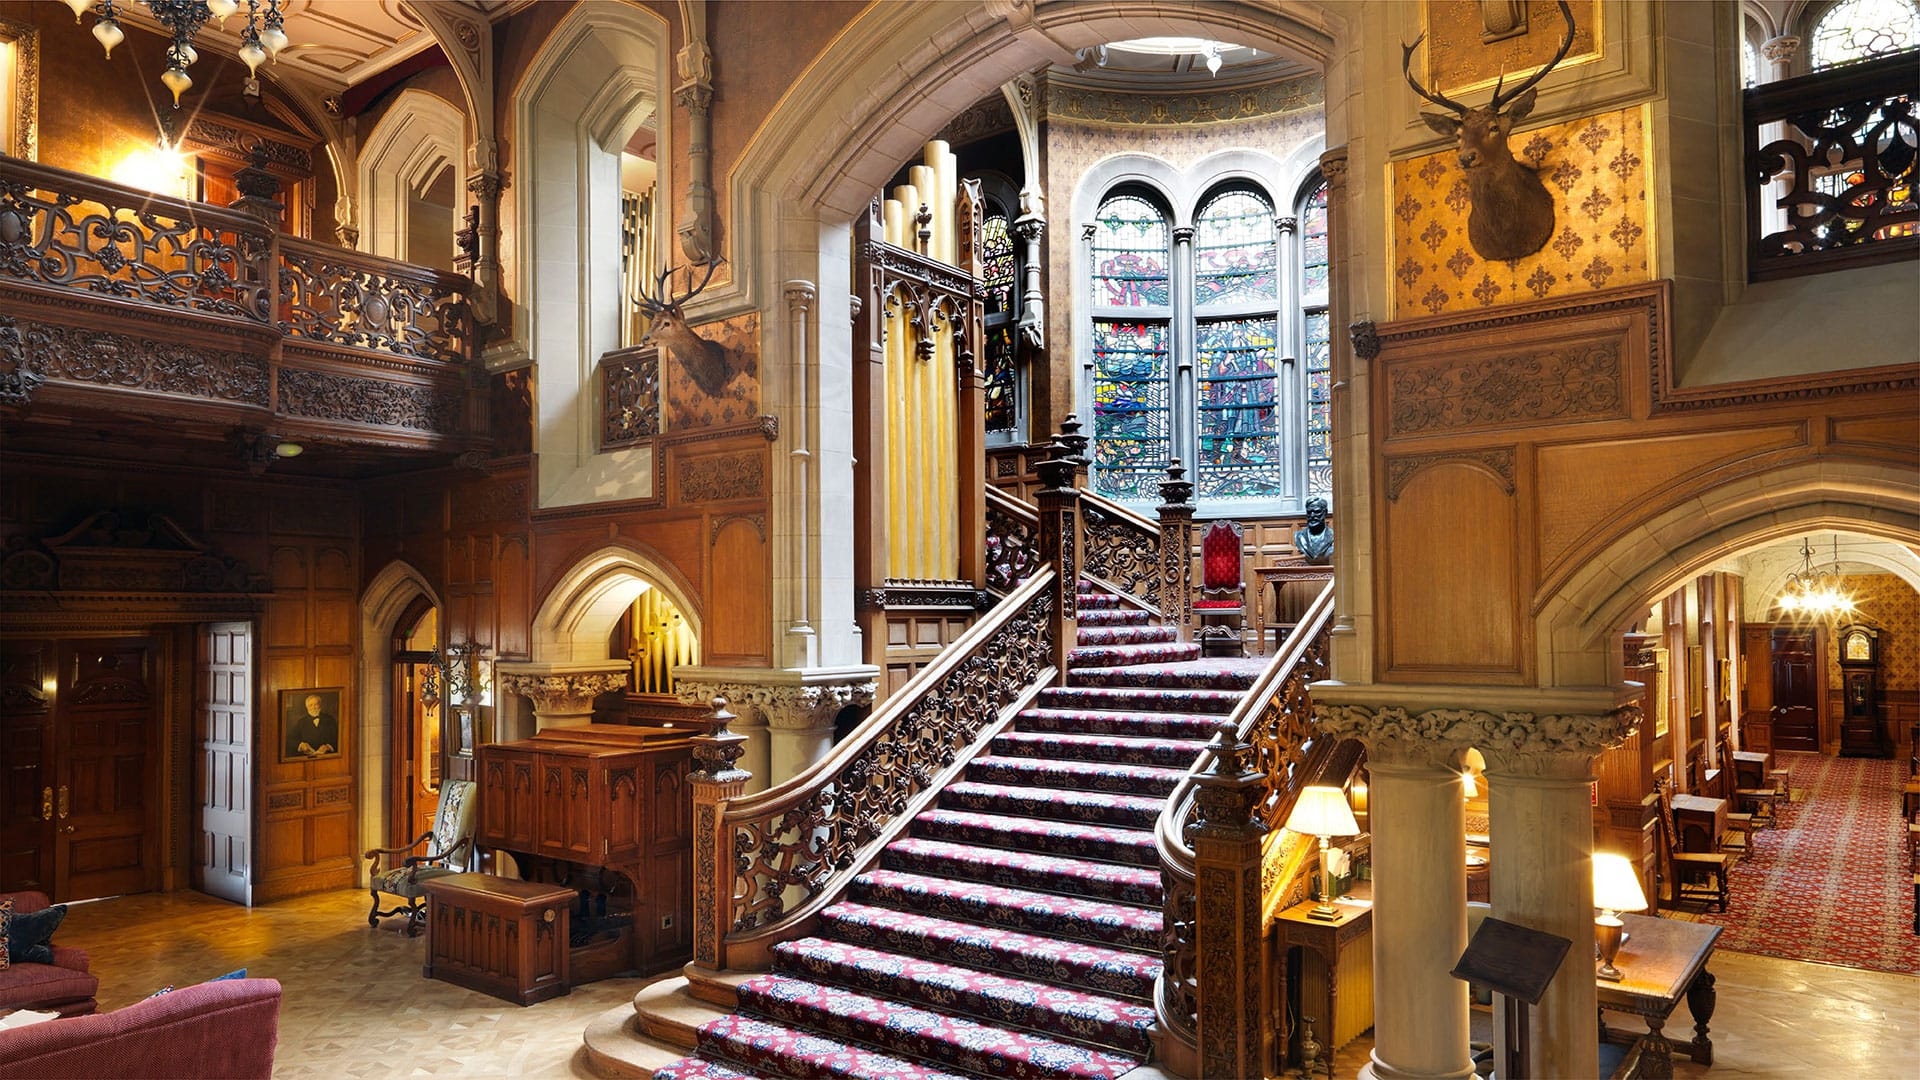 Decadent staircase found at Skibo